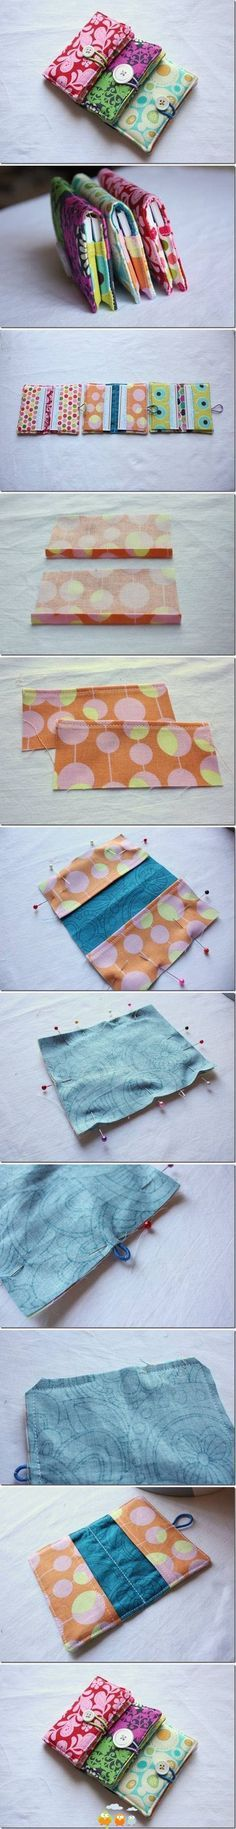 I thought this was so cute...could make this for many purposes. Tissue holder, notebooks, wallet